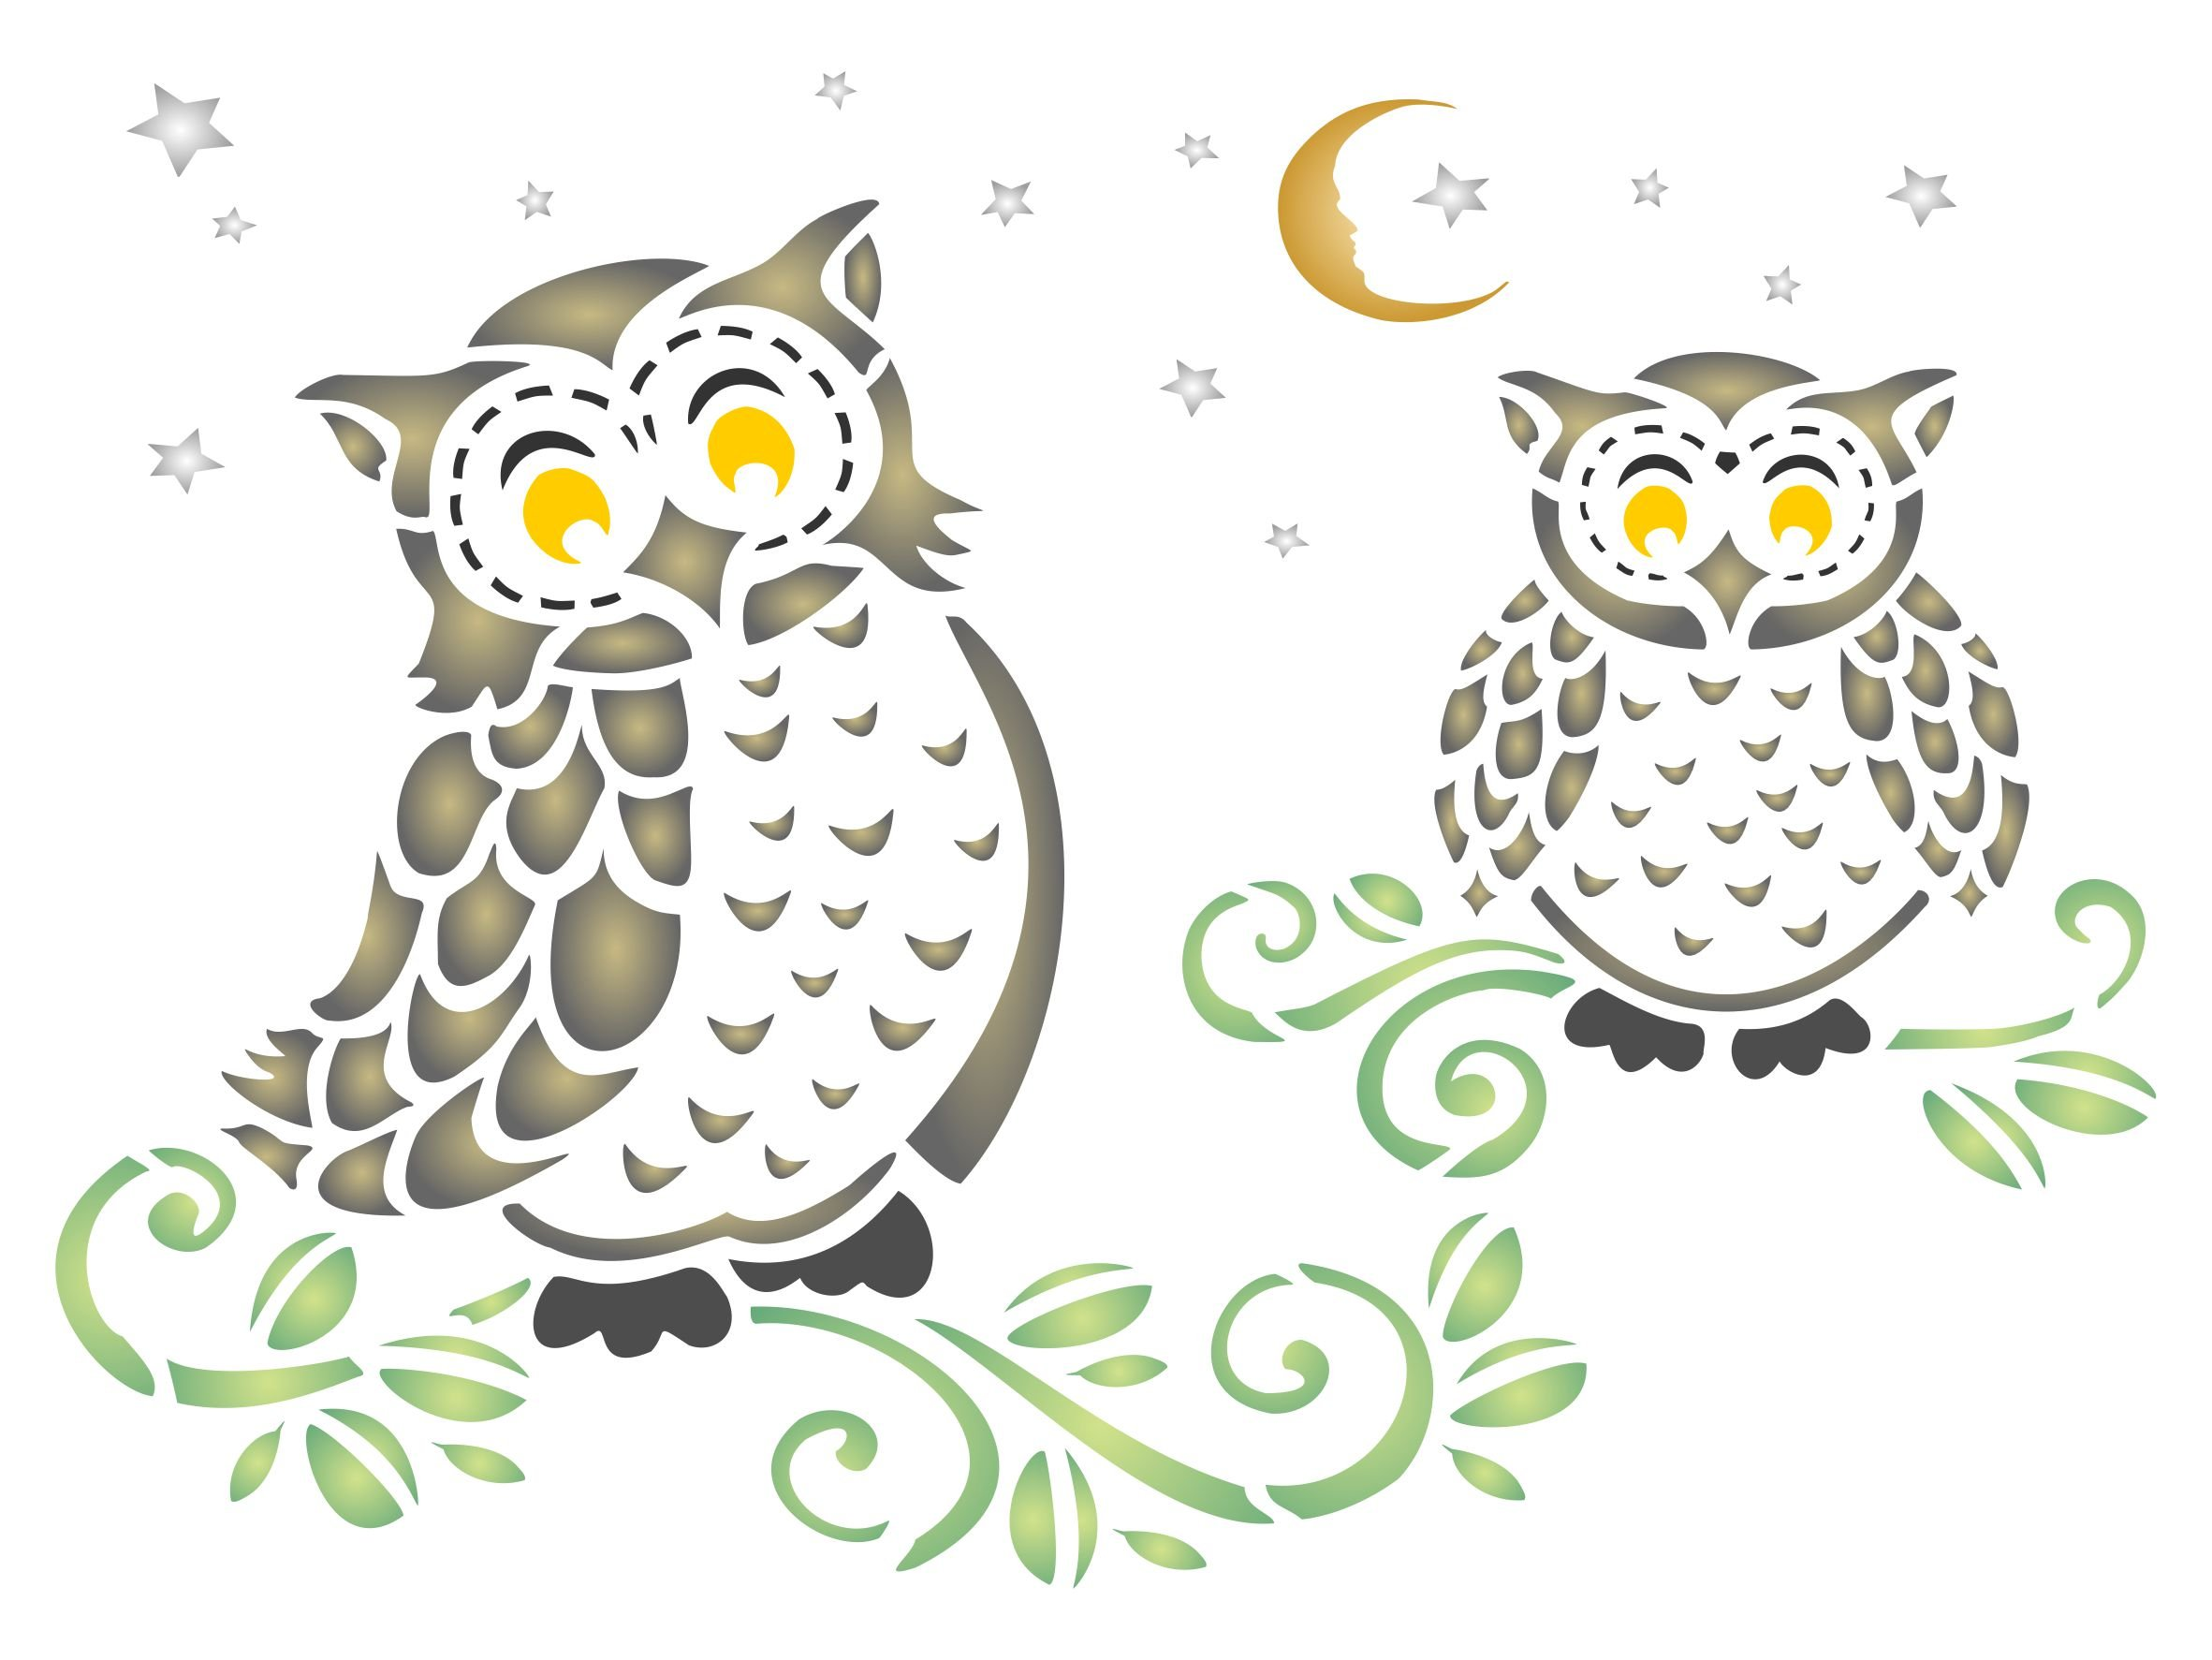 Owls Stencil - (size 9''w x 6.5''h) Reusable Wall Stencils for Painting - Best Quality Decor Ideas - Use on Walls, Floors, Fabrics, Glass, Wood, and More... by Stencils for Walls